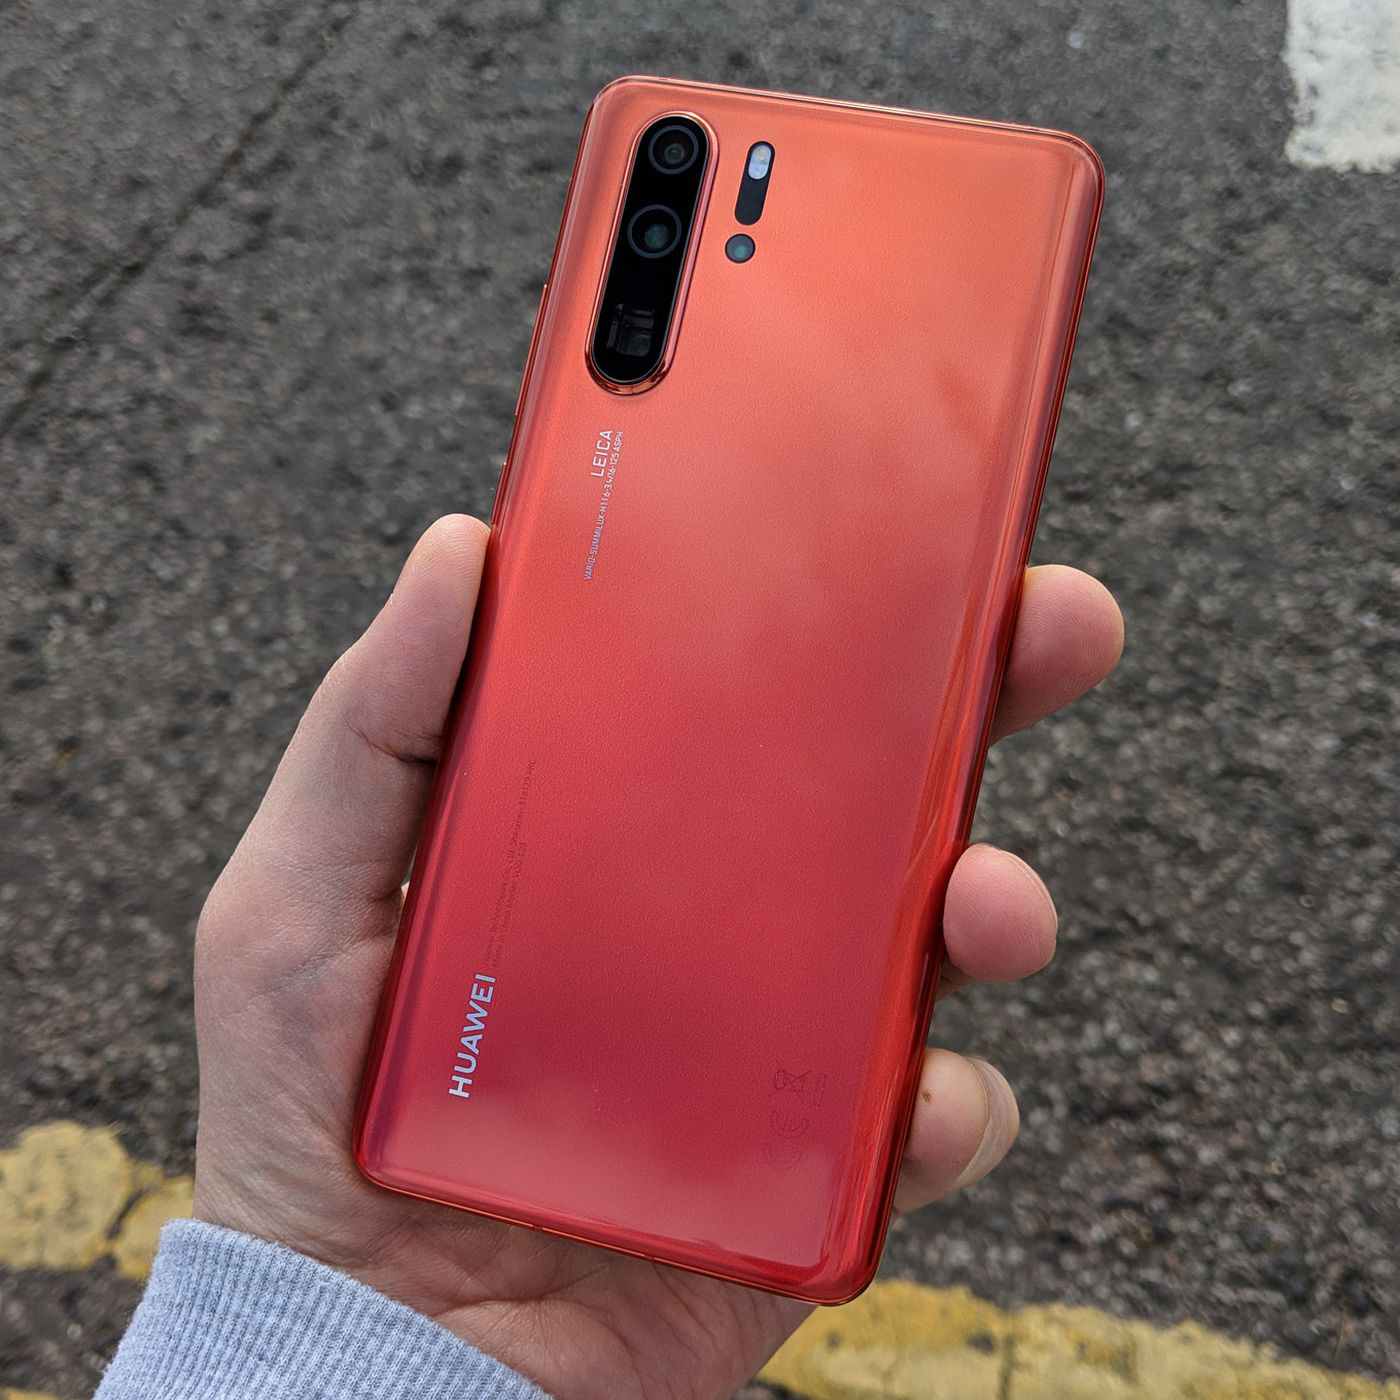 Huawei's P30 Pro raises the bar for low-light photography - The Verge